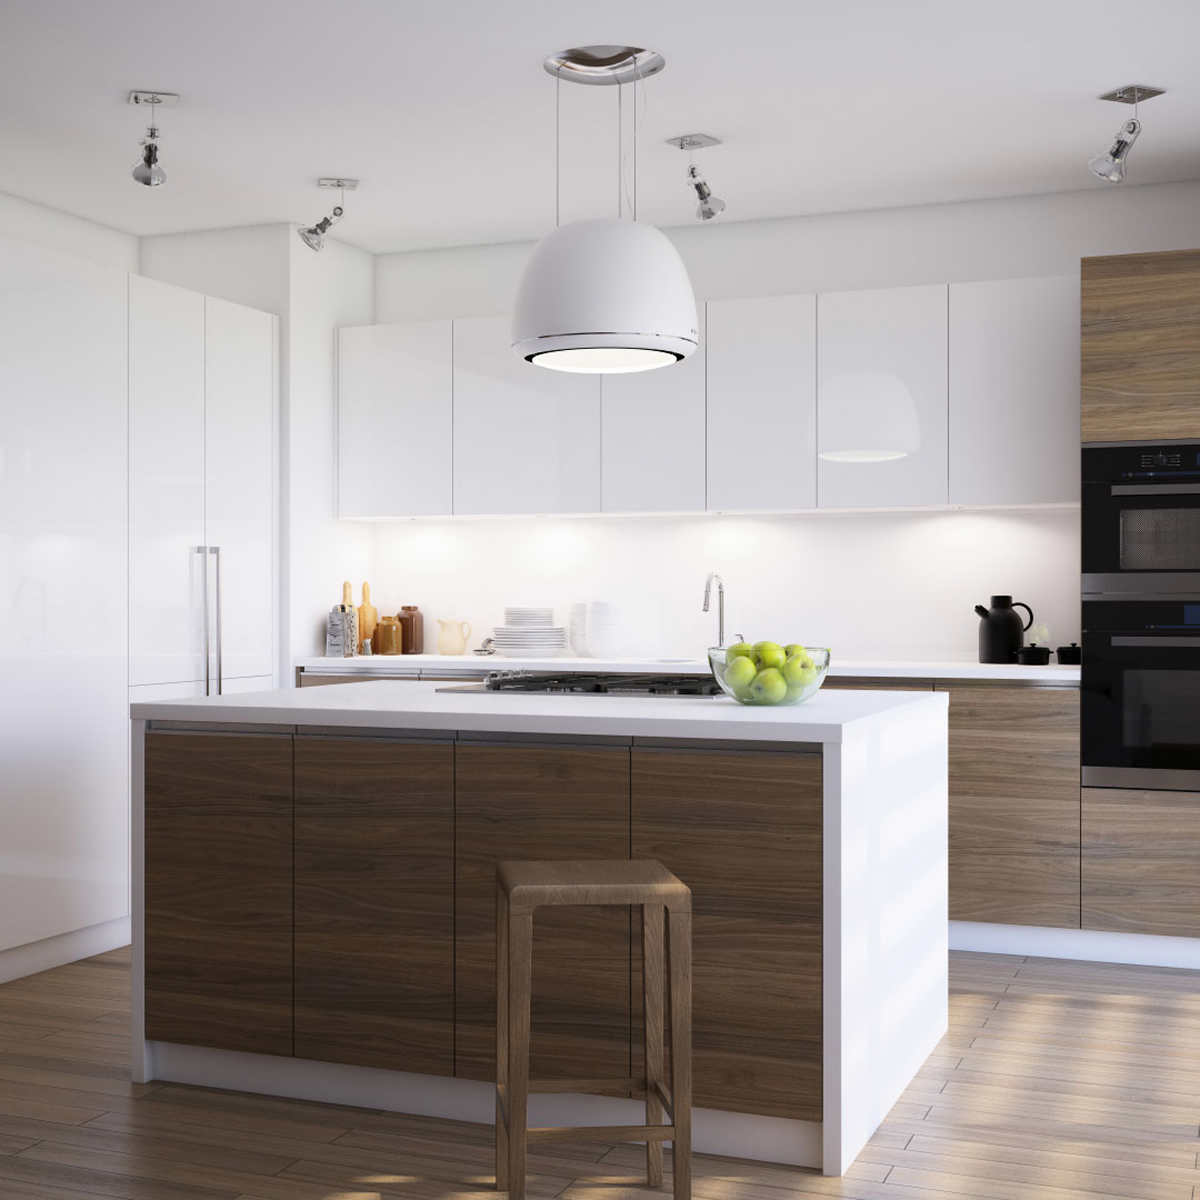 Kitchen Cabinets European Design full-custom european kitchens and bathsmuller cabinetry<br